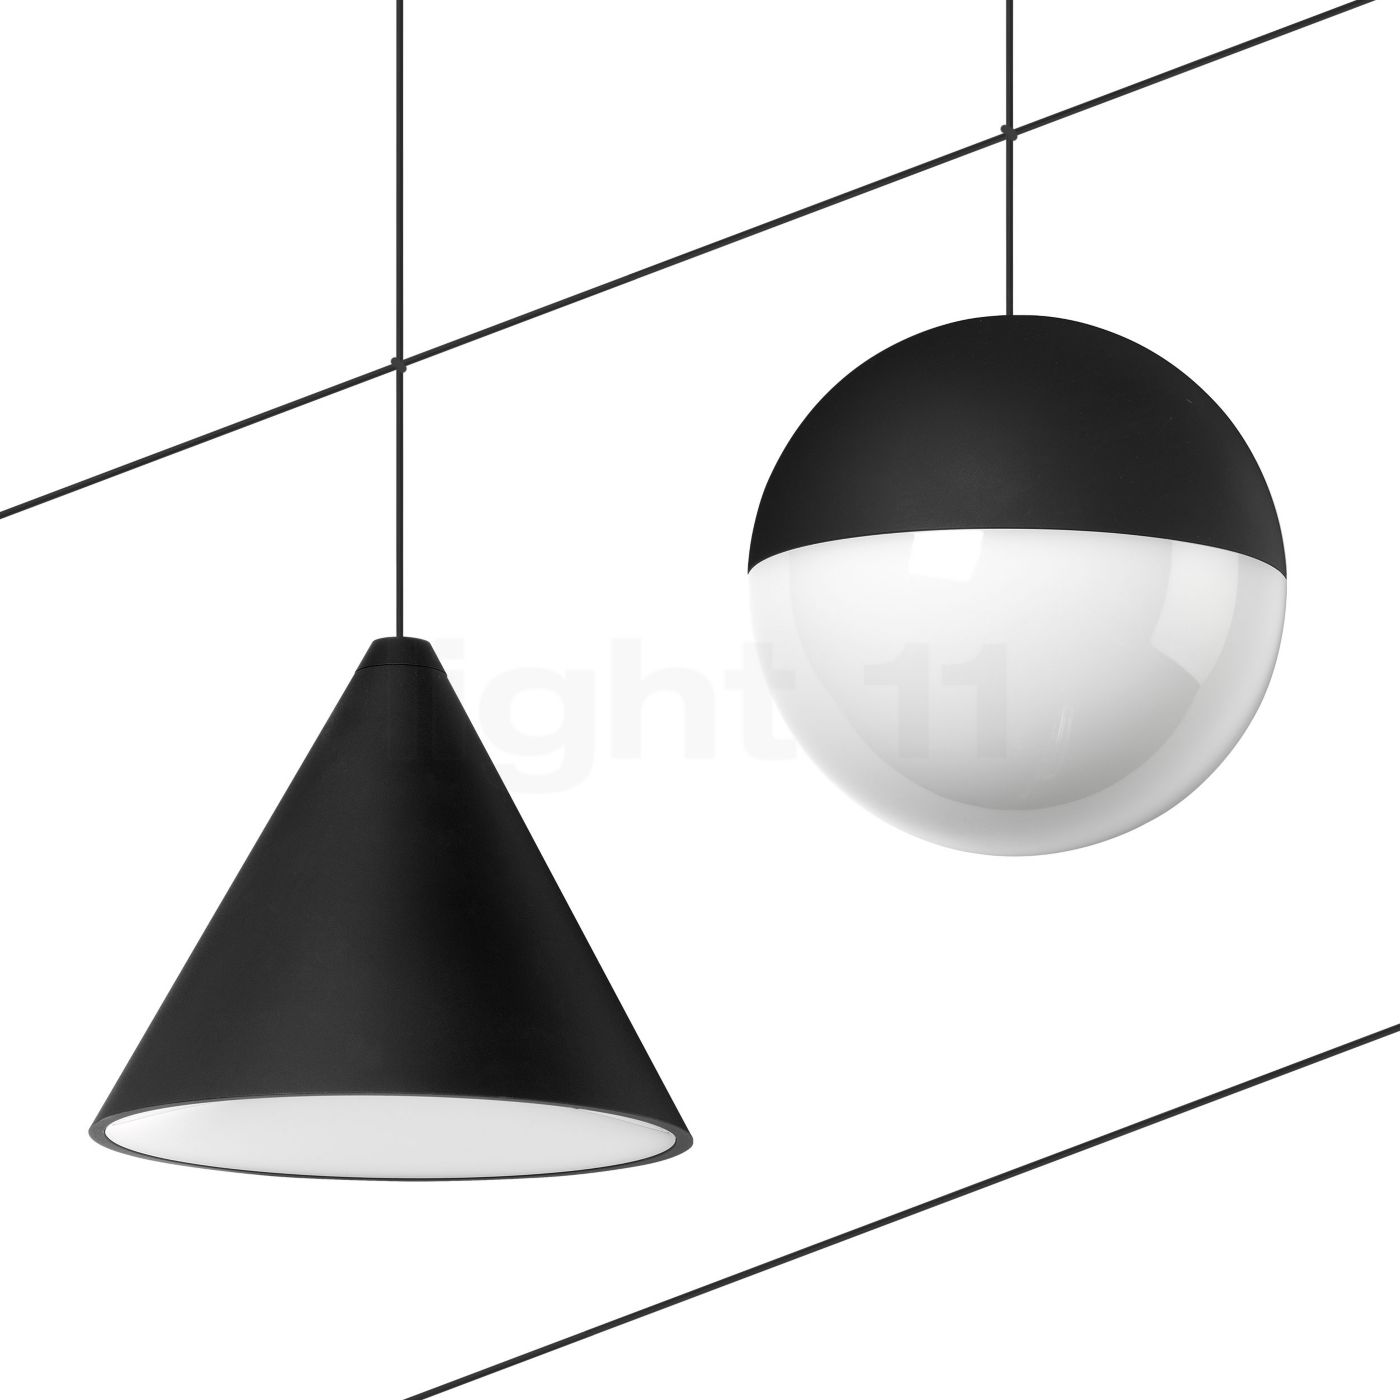 flos string light gedecentraliseerde hanglamp. Black Bedroom Furniture Sets. Home Design Ideas